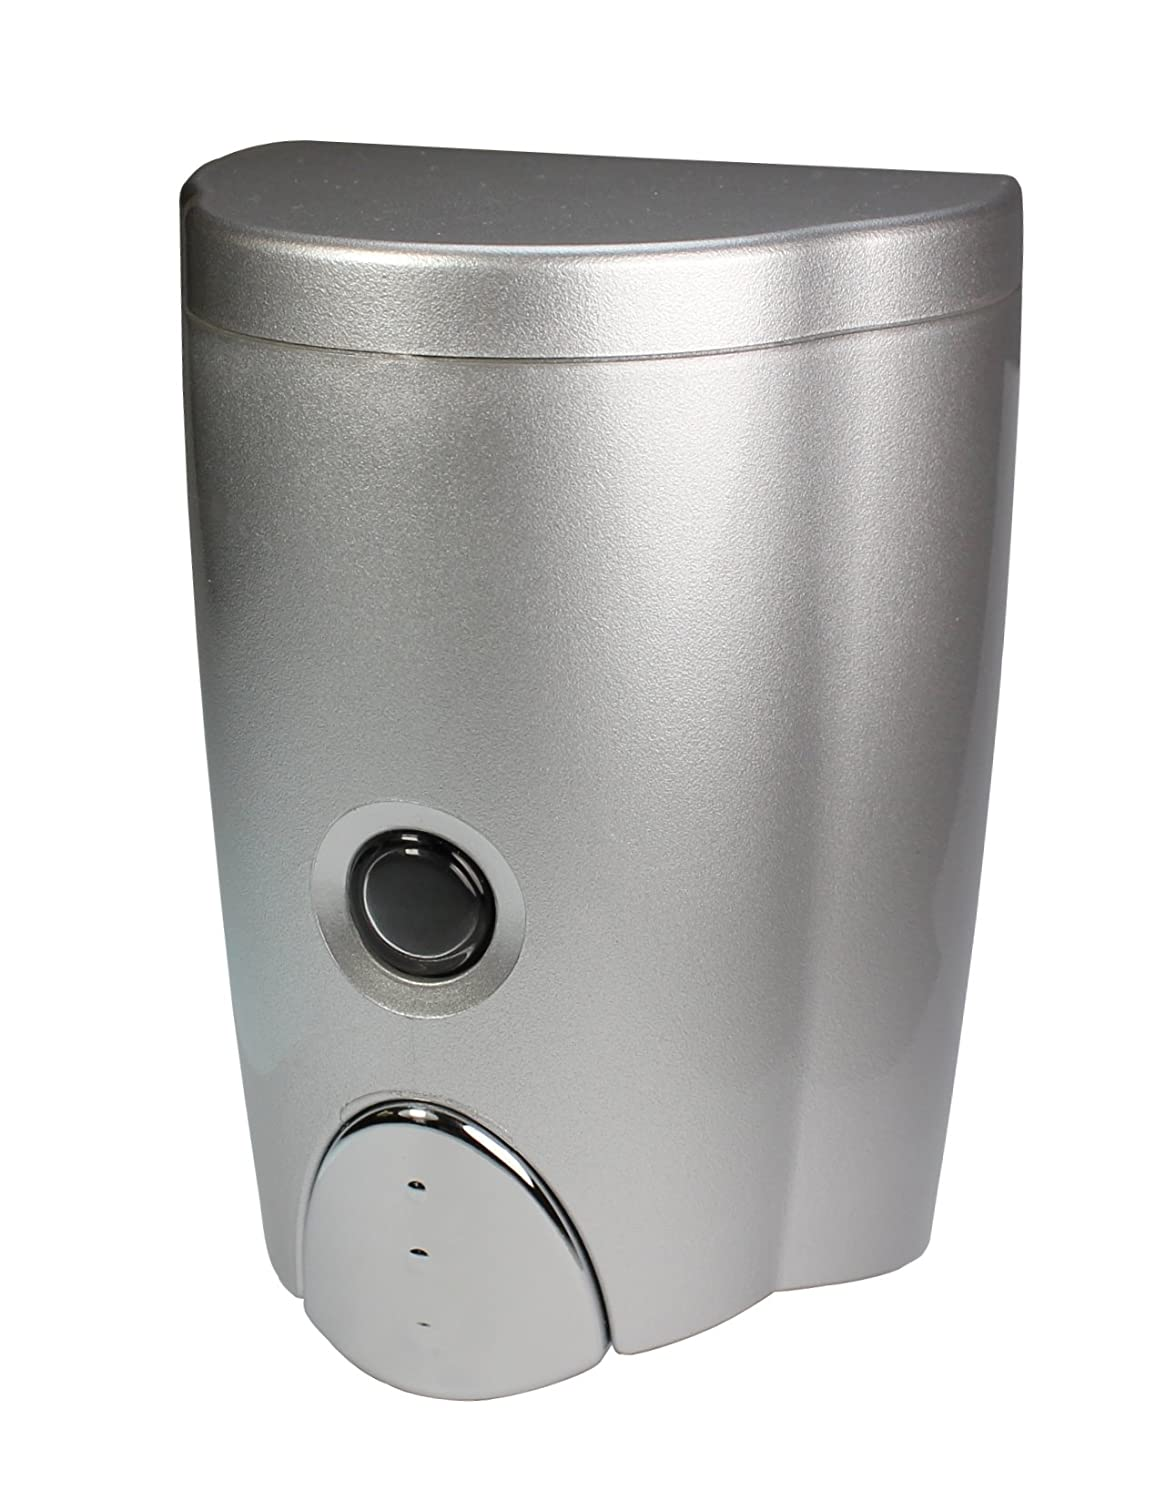 Amazoncom Homepluz Simply Silver Wall Mount Soap Dispenser For